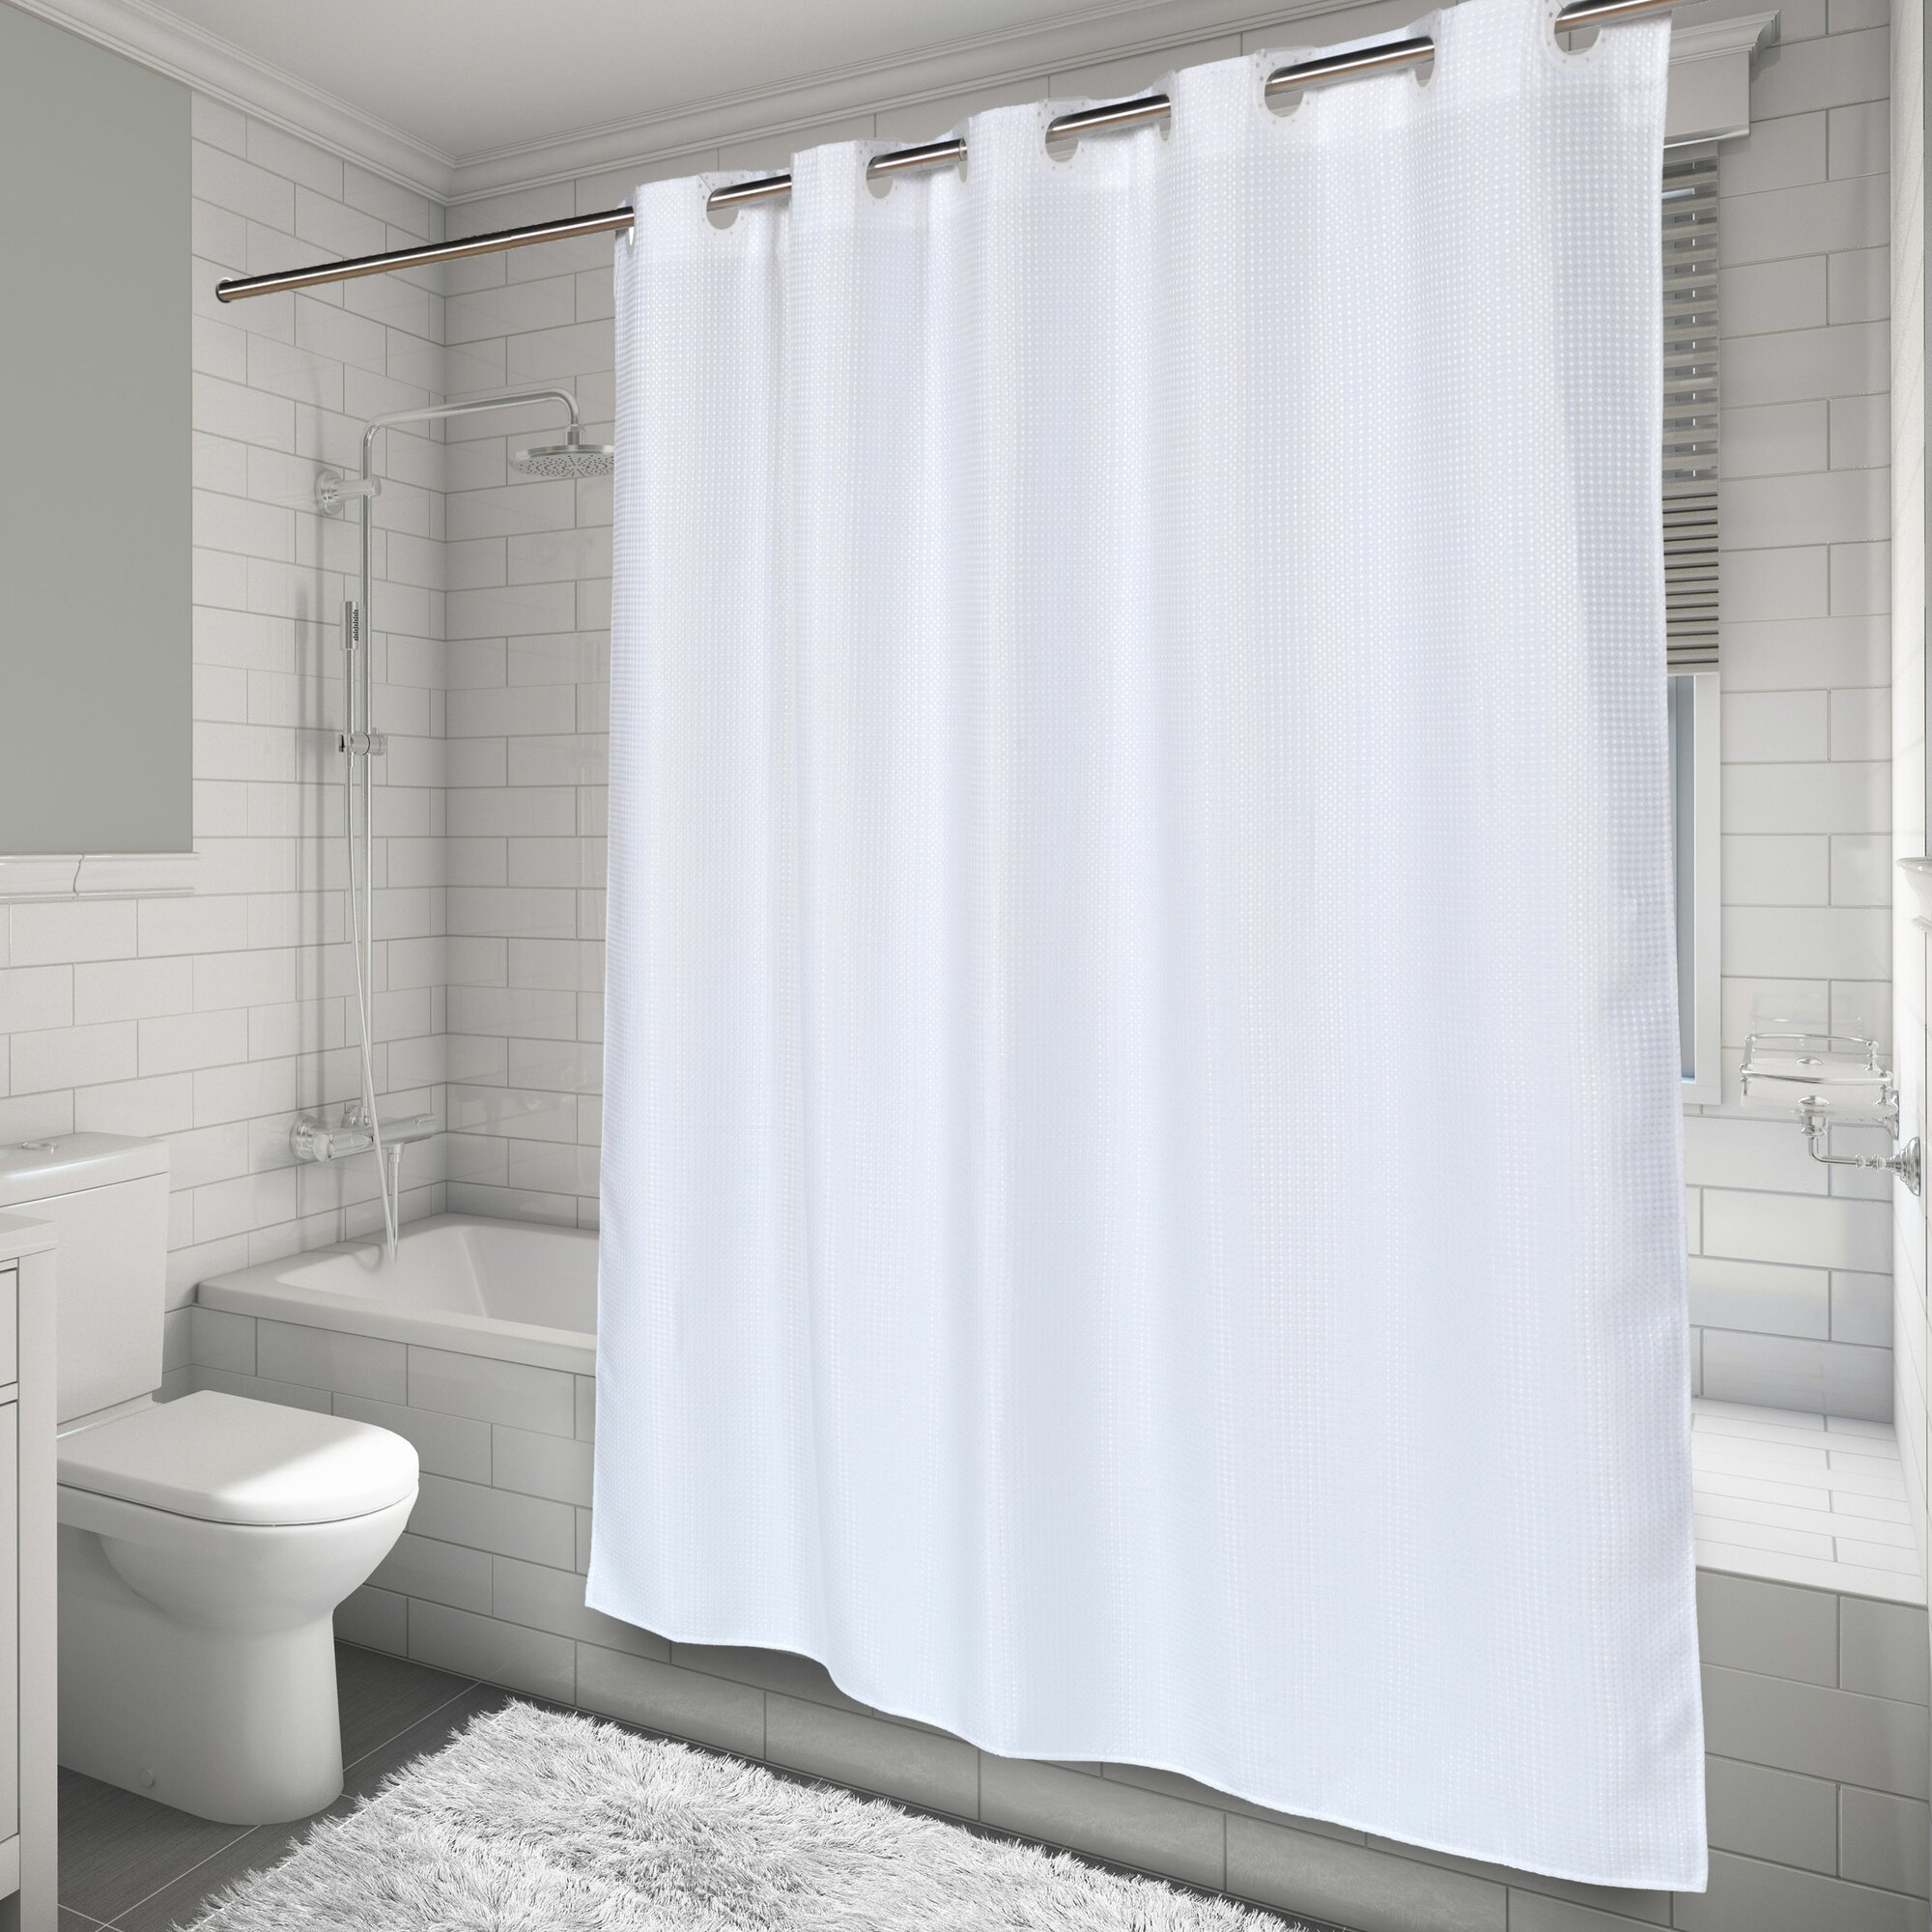 carnation home fashions ez on waffle weave shower curtain